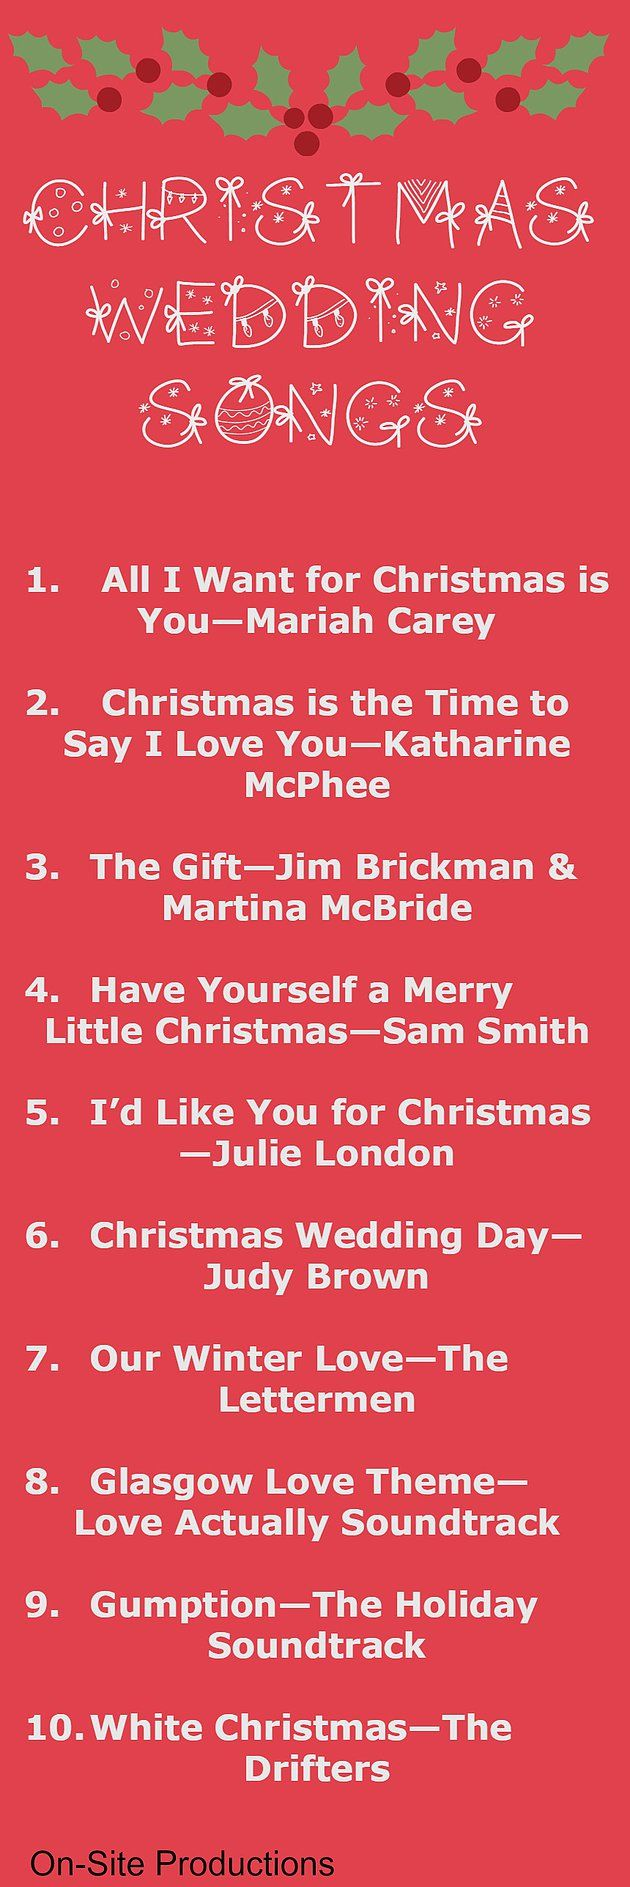 Double wedding soundtrack - 10 Christmas Wedding Songs Oh These Are Perfect For My Christmas Wedding The Link